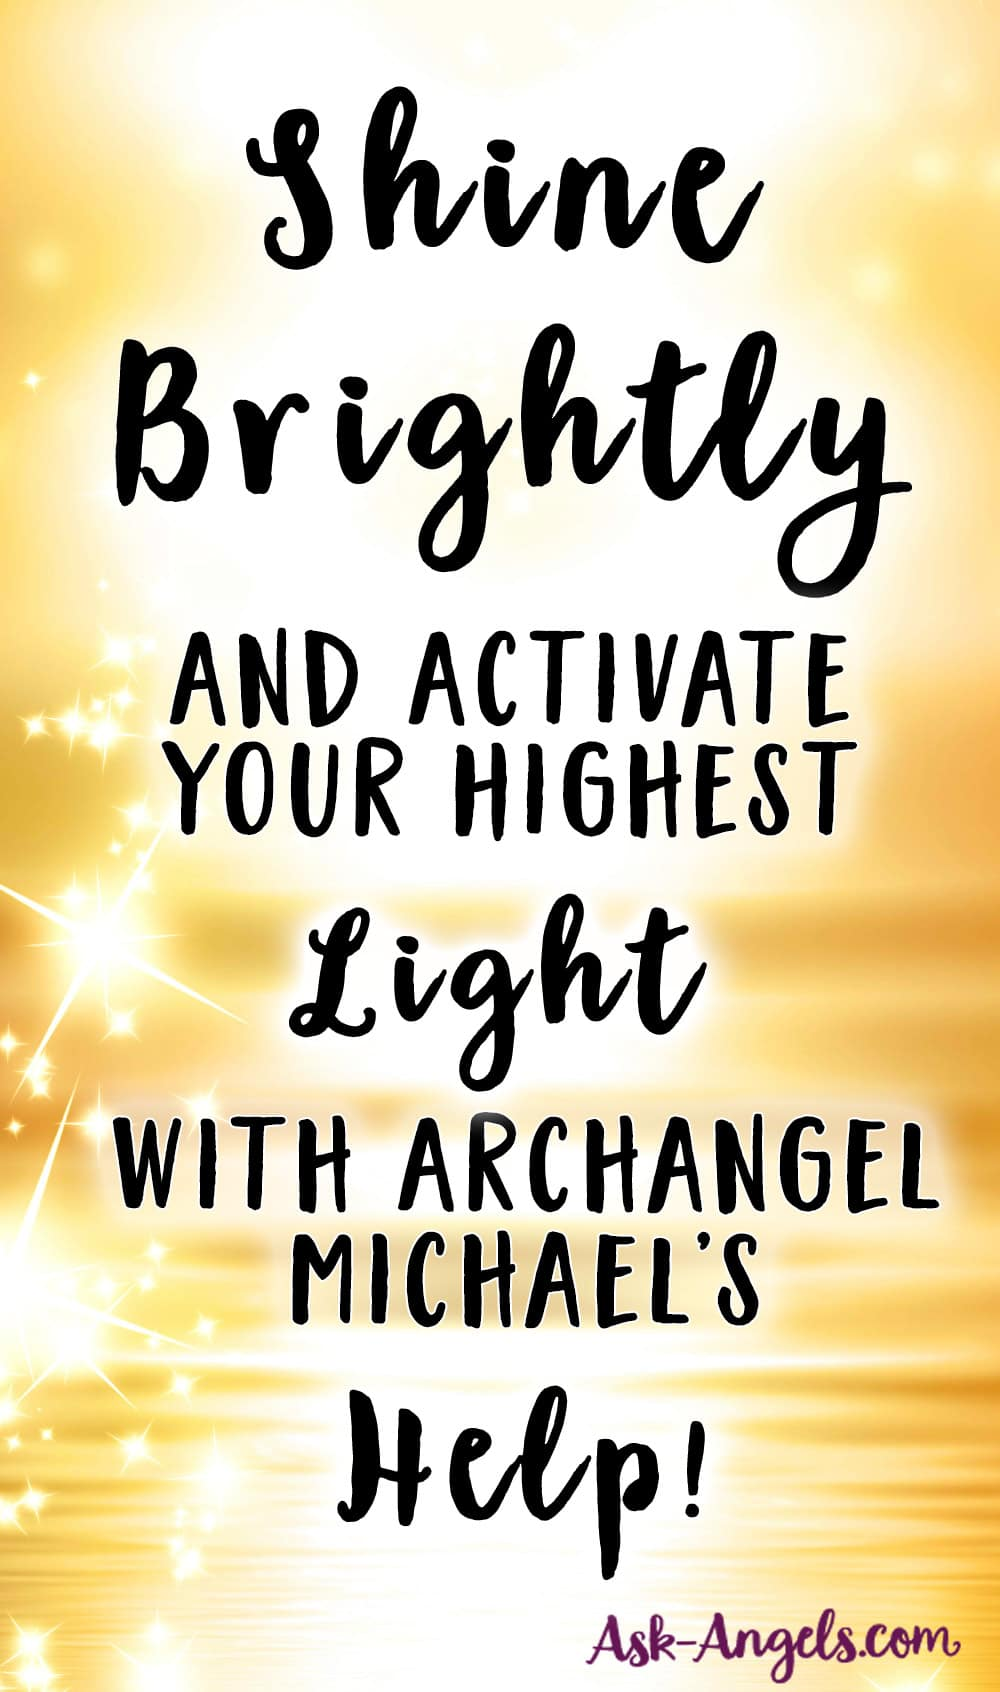 Shine Brightly with Archangel Michael's Help